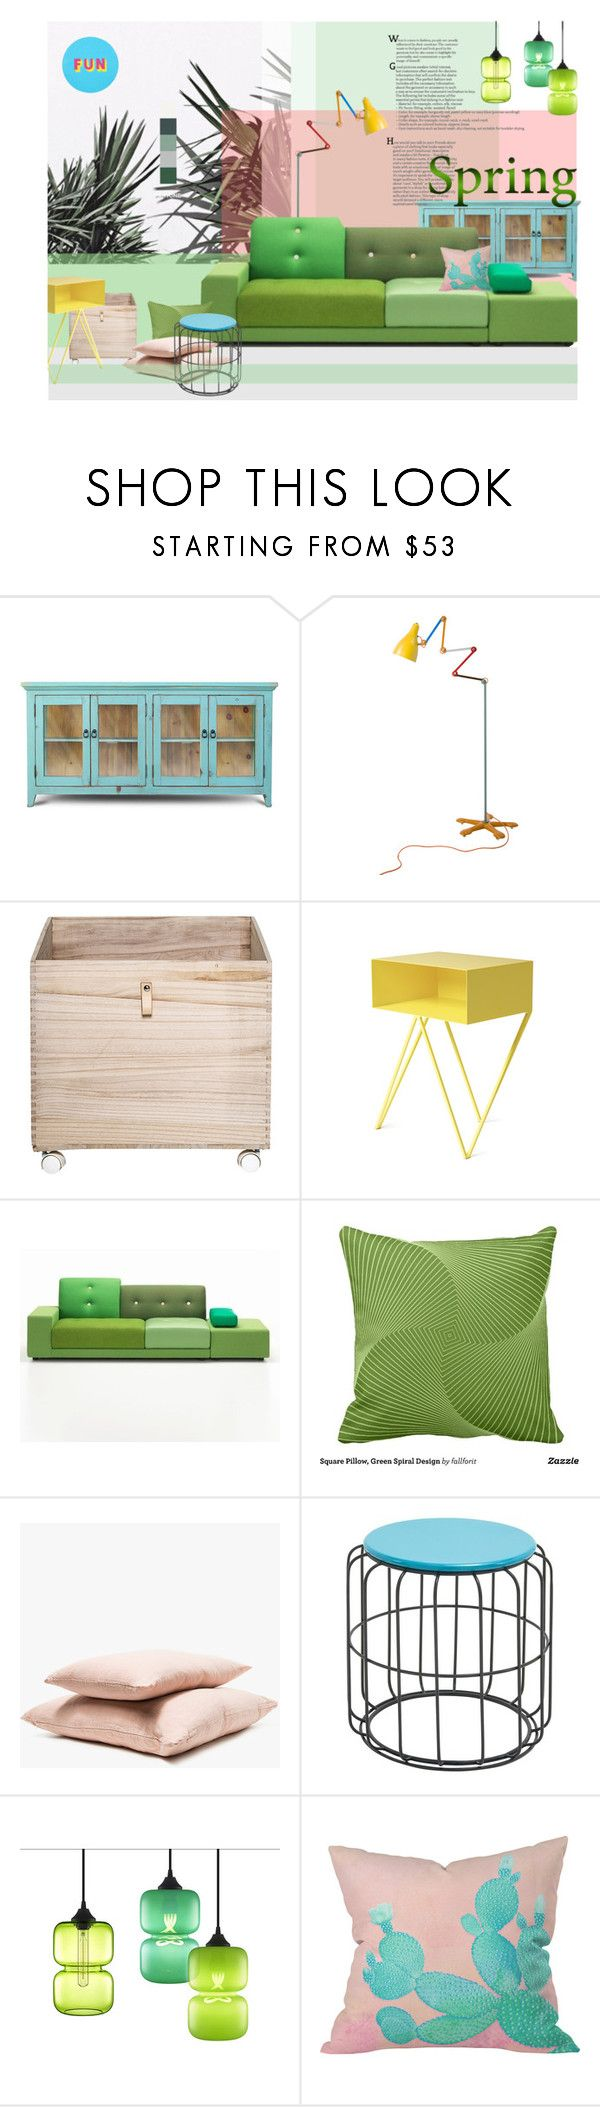 """""""Spring is coming..."""" by laste-co ❤ liked on Polyvore featuring interior, interiors, interior design, home, home decor, interior decorating, Tsé & Tsé, Bloomingville, Vitra and Hawkins"""